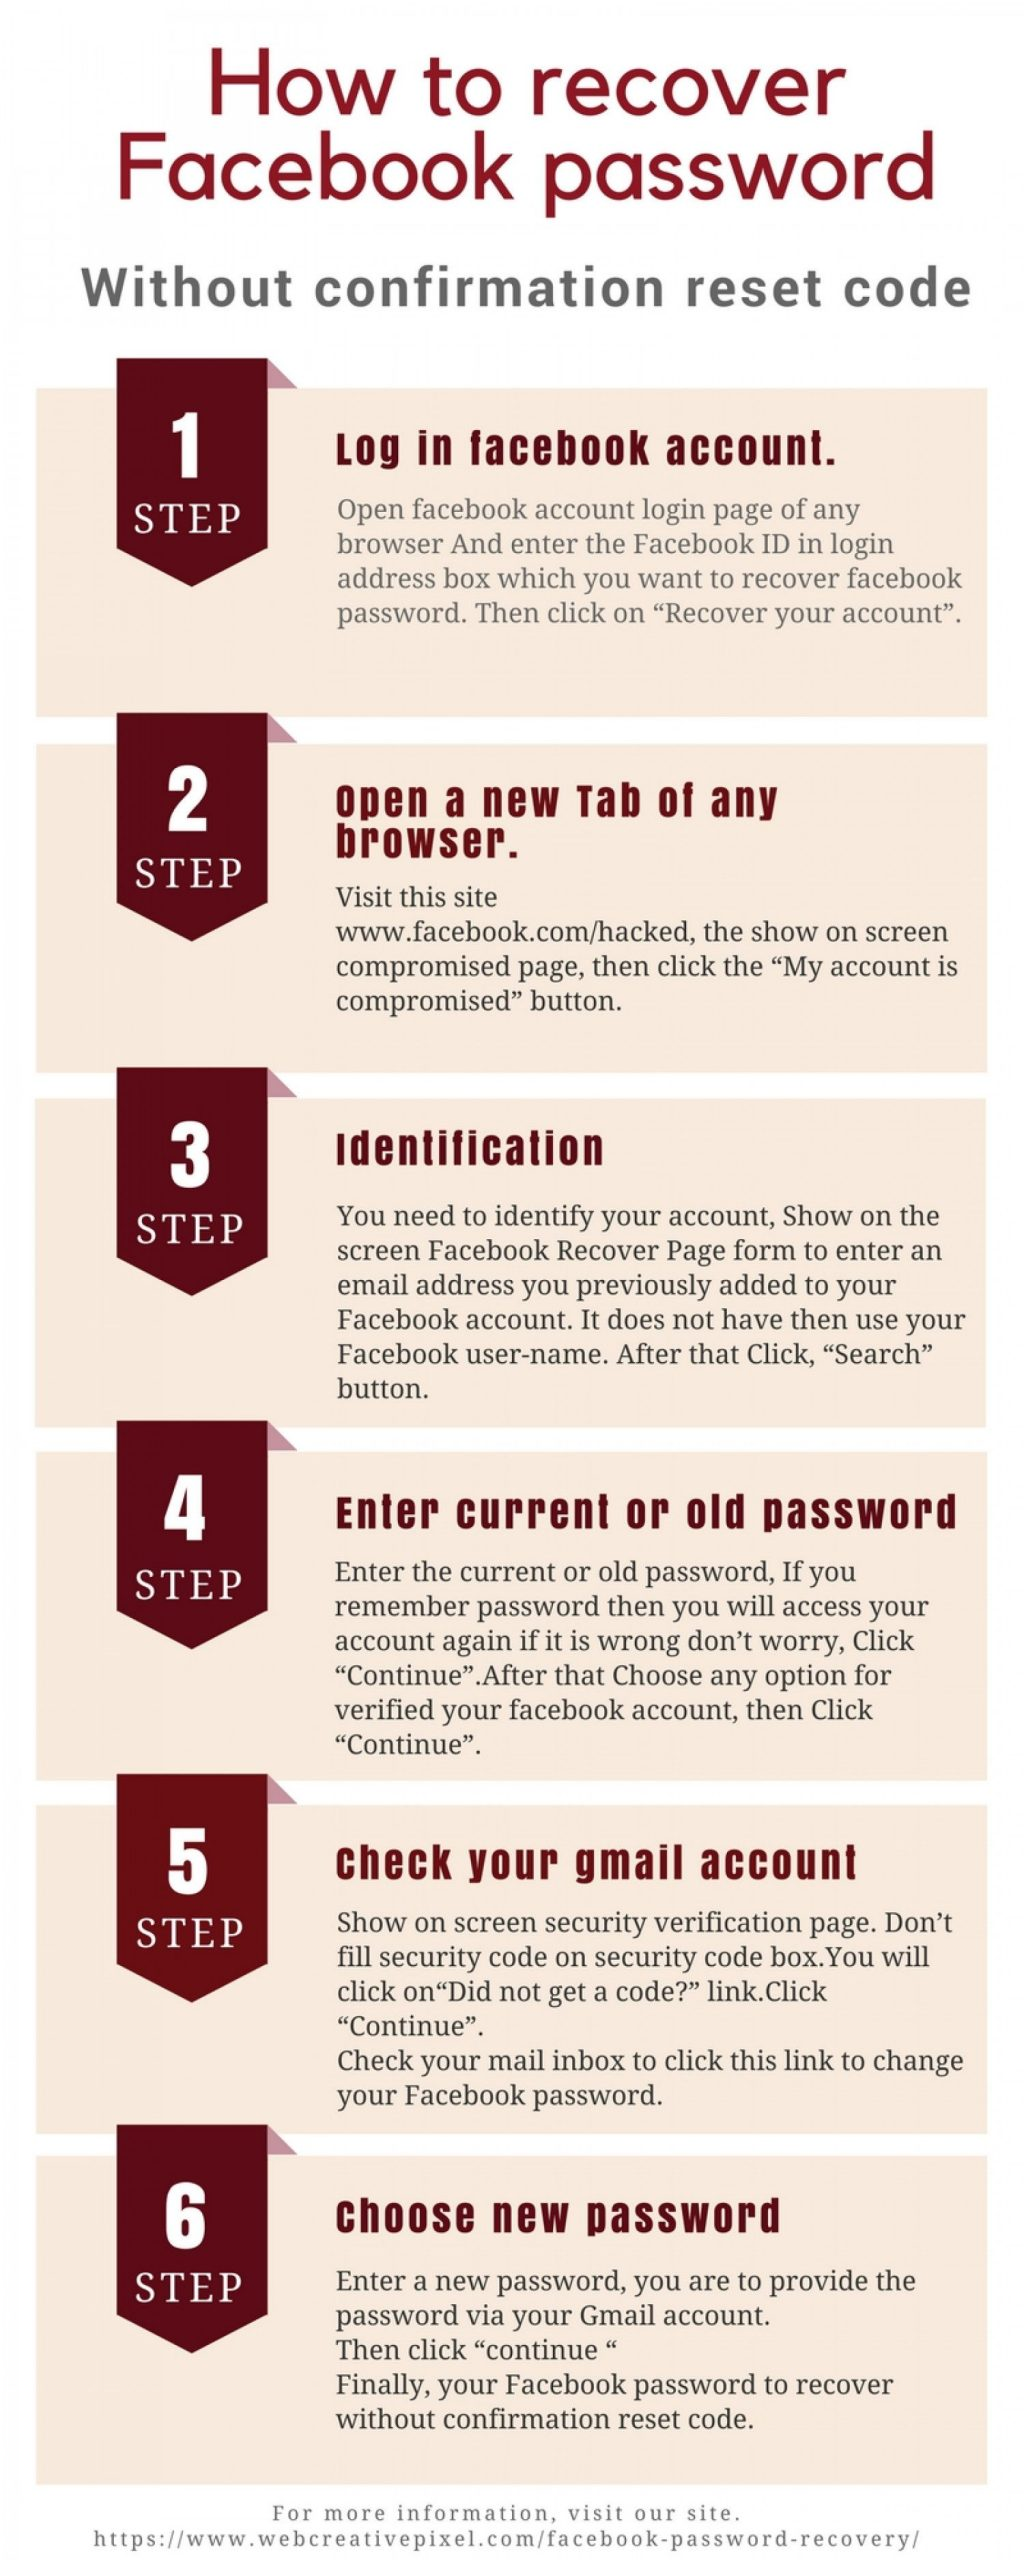 Park Art My WordPress Blog_How To Recover Facebook Password Without Confirmation Reset Code 2019